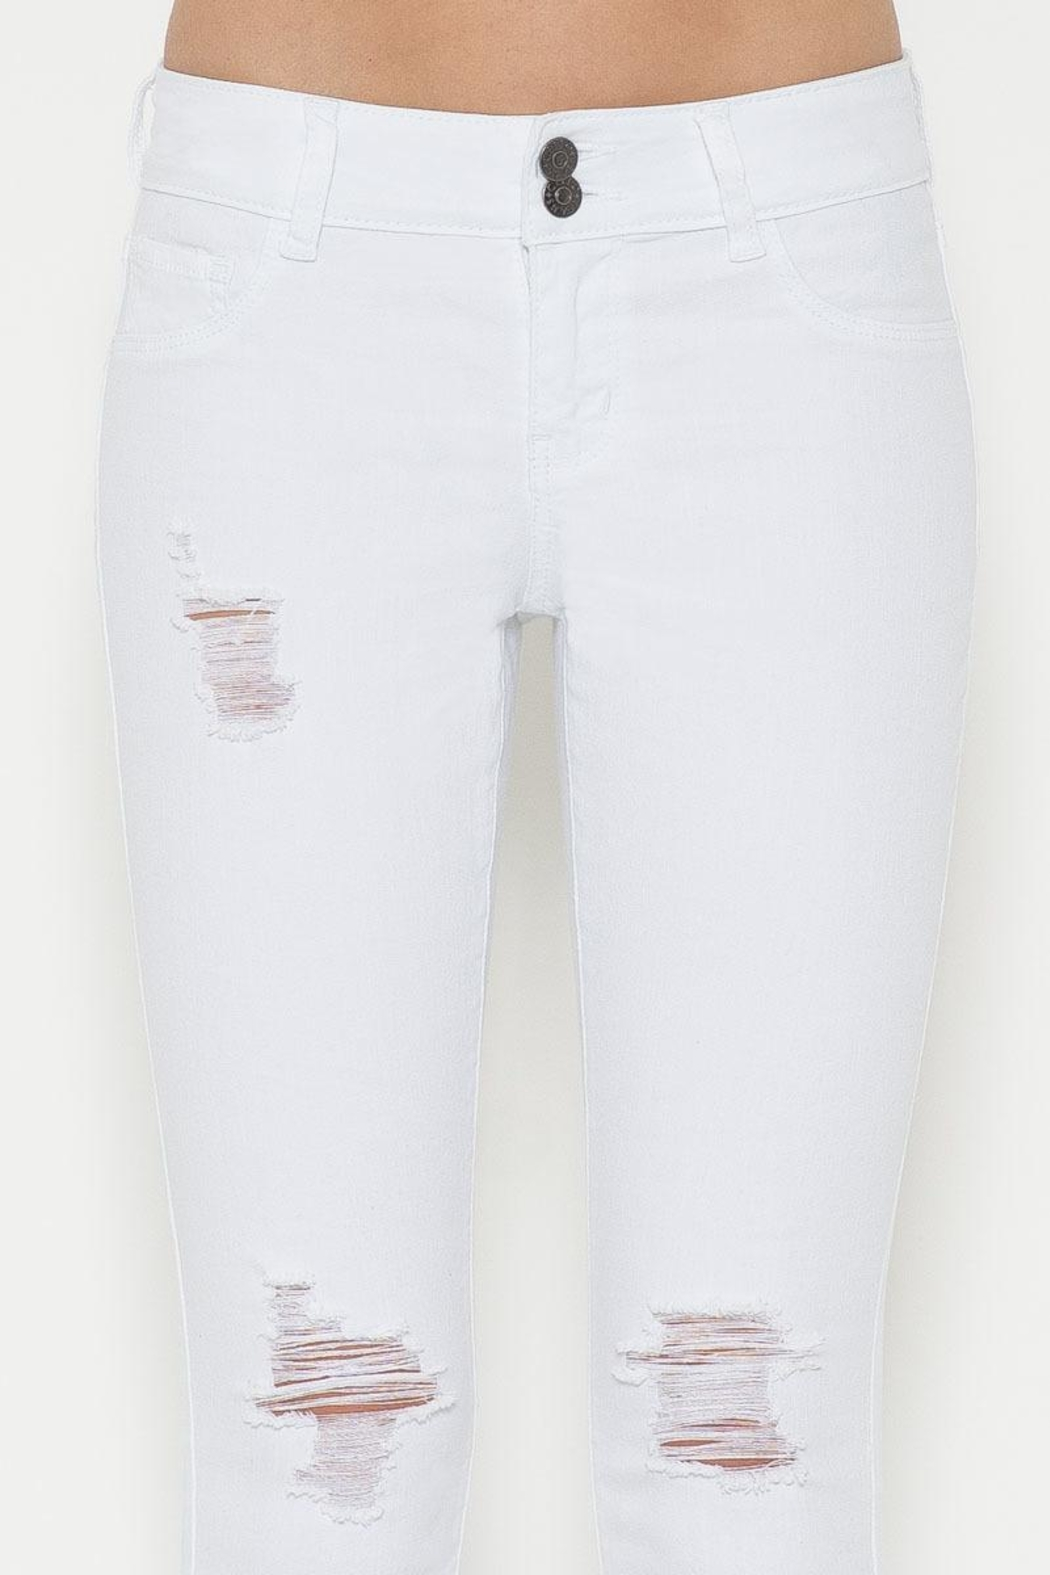 Cello Jeans White Distressed Jeans - Front Full Image